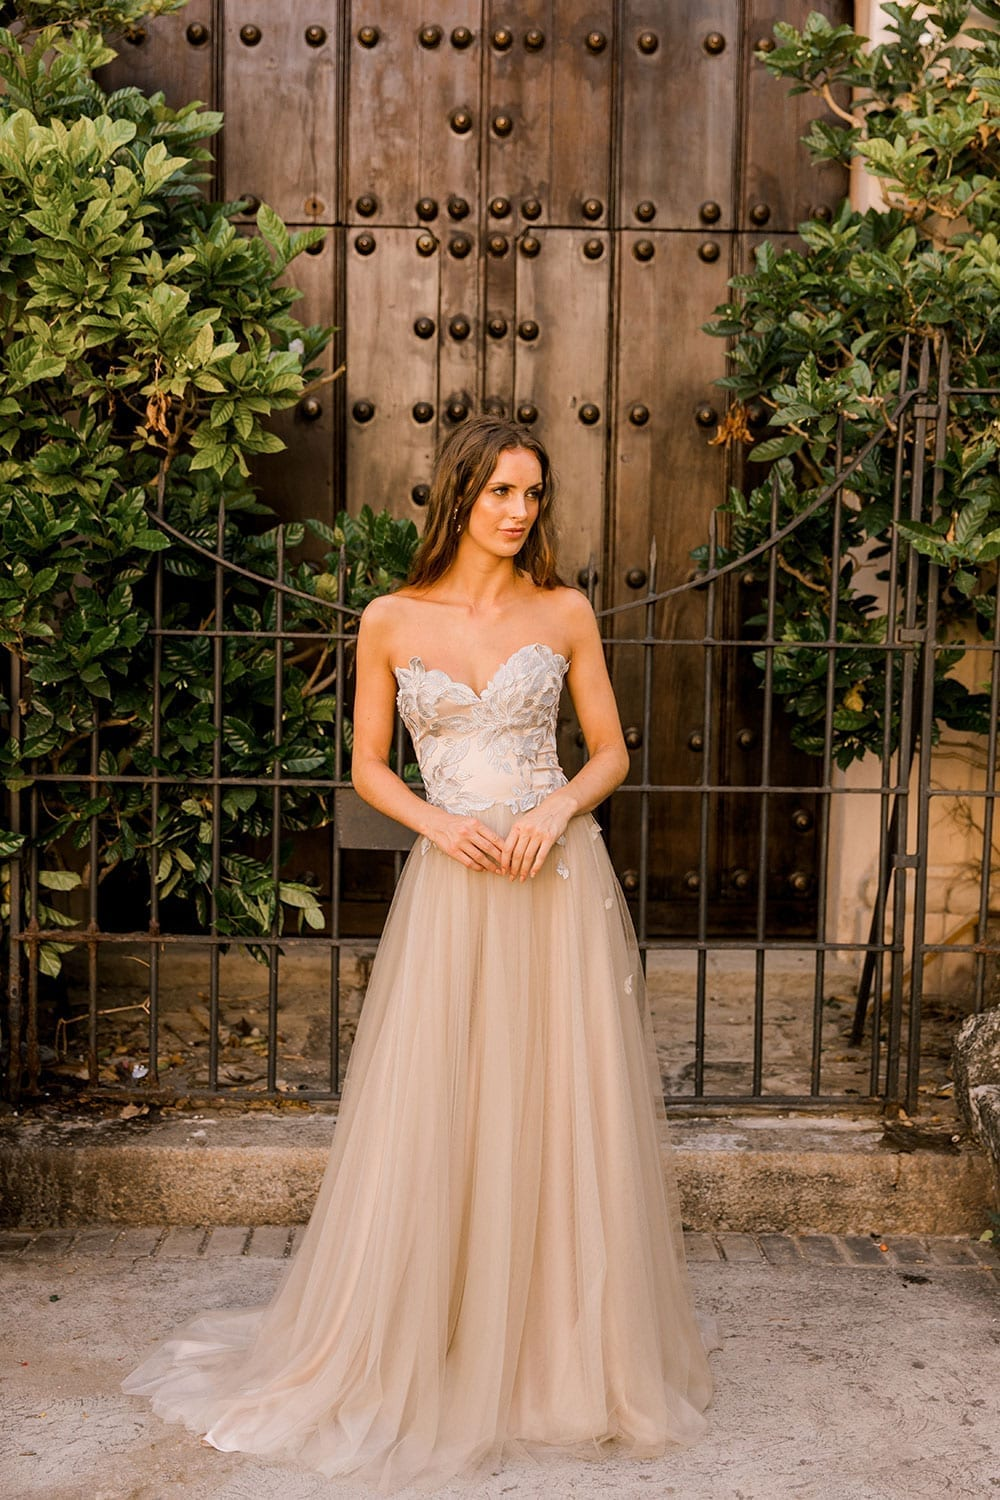 Model wearing Vinka Design Narnia Wedding Dress, a Strapless Tulle Gown with Silver Embroidered Lace Detail in front of a wooden doorway with hands clasped in Cuba